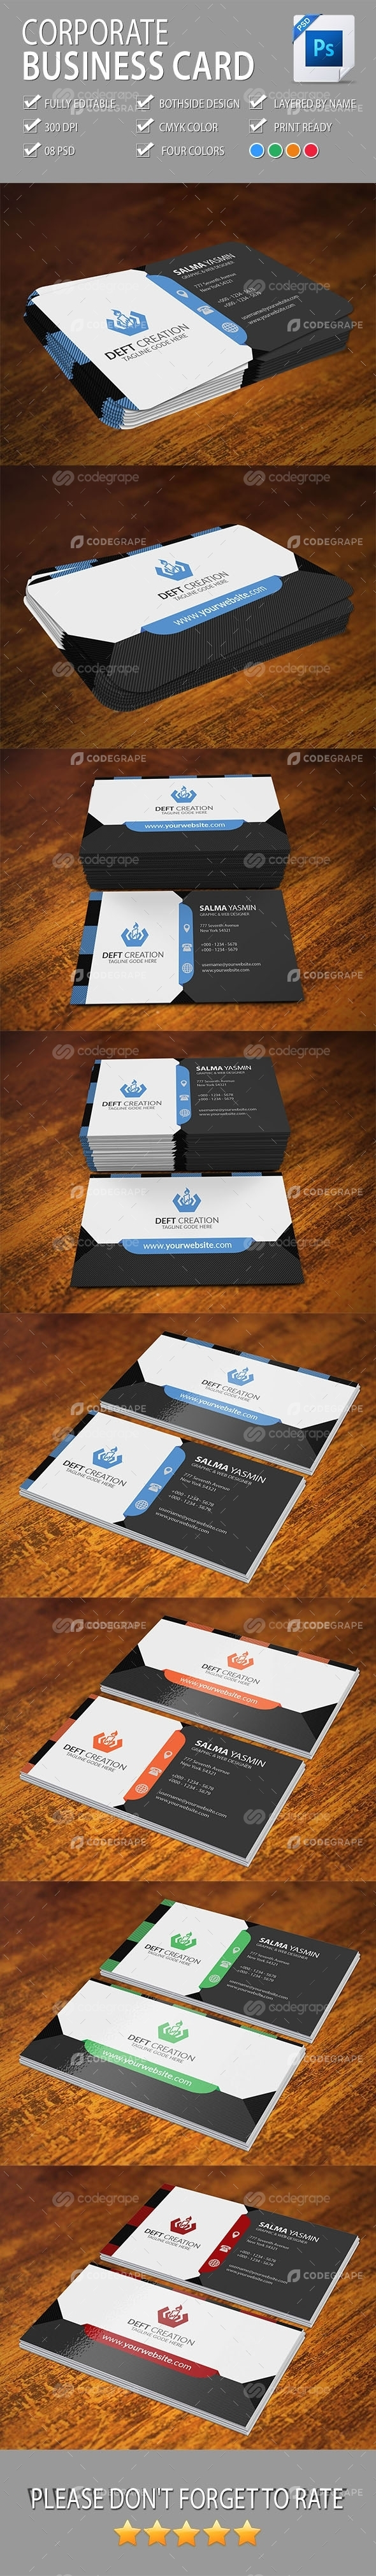 Corporate Business Card Vol-10